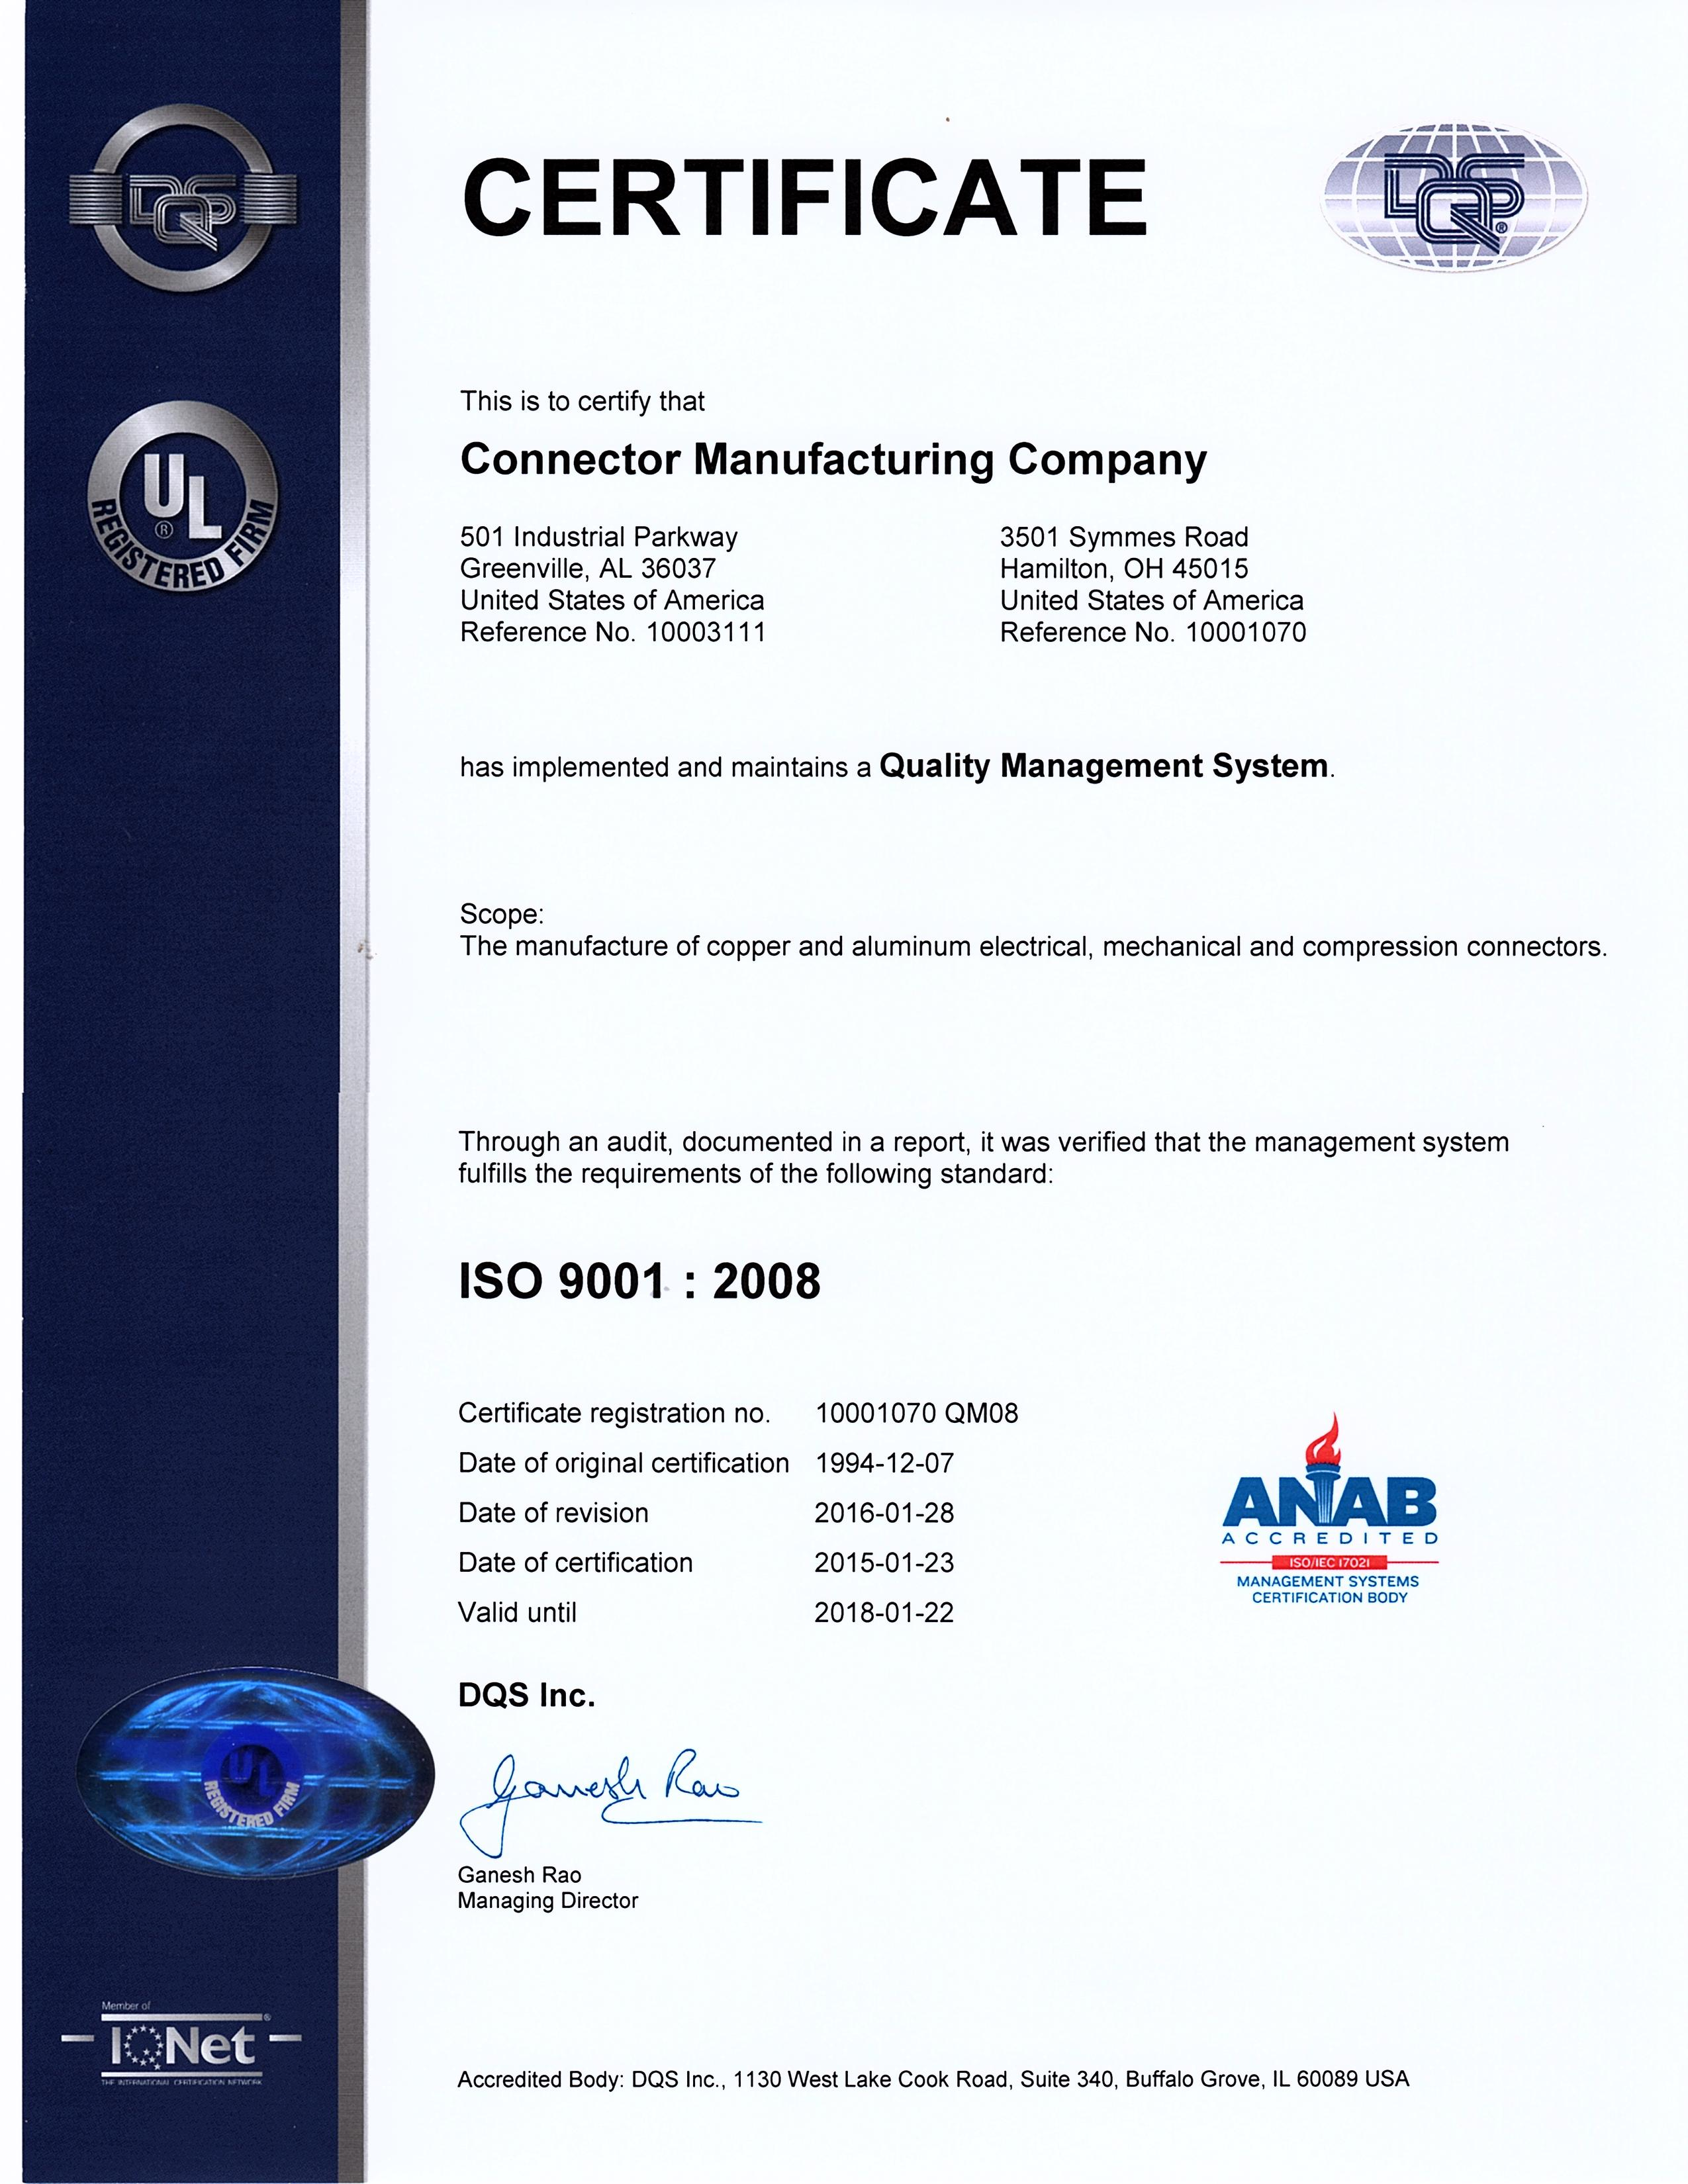 iso-certification-2016.jpg